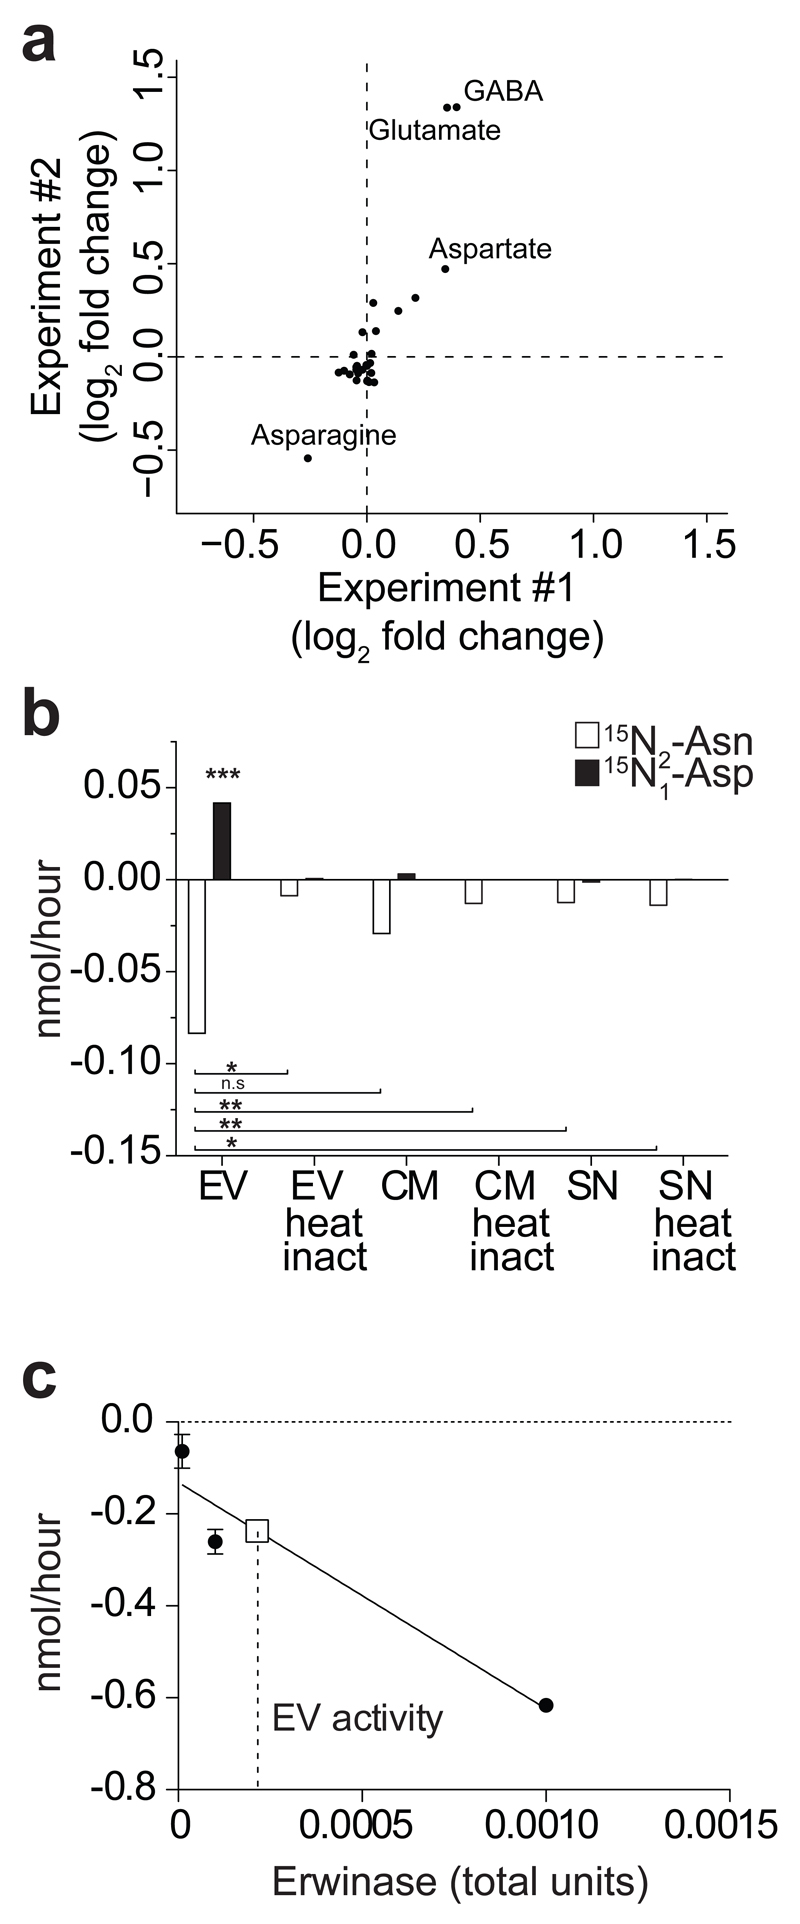 NSC EVs are metabolically active in vitro . (a) Scatter plot of metabolomics experiment showing log 2 fold changes of extracellular metabolites in medium + EVs vs . Vehicle as in a . Positive/negative values indicate production/consumption of metabolites, respectively. Data from two independent experiments are shown. (b) Barplot of the consumption of 15 N 2 -Asn and production of 15 N-Asp mediated by EVs, conditioned medium (i.e. CM, medium with EVs) and supernatant (i.e. SN, medium deprived of EVs), with or without heat inactivation (100°C for 10'). Data are mean ± SEM and have been obtained from n= 2 independent experiments. Statistical analysis was performed using one-way ANOVA, followed by Bonferroni's test correction. * p